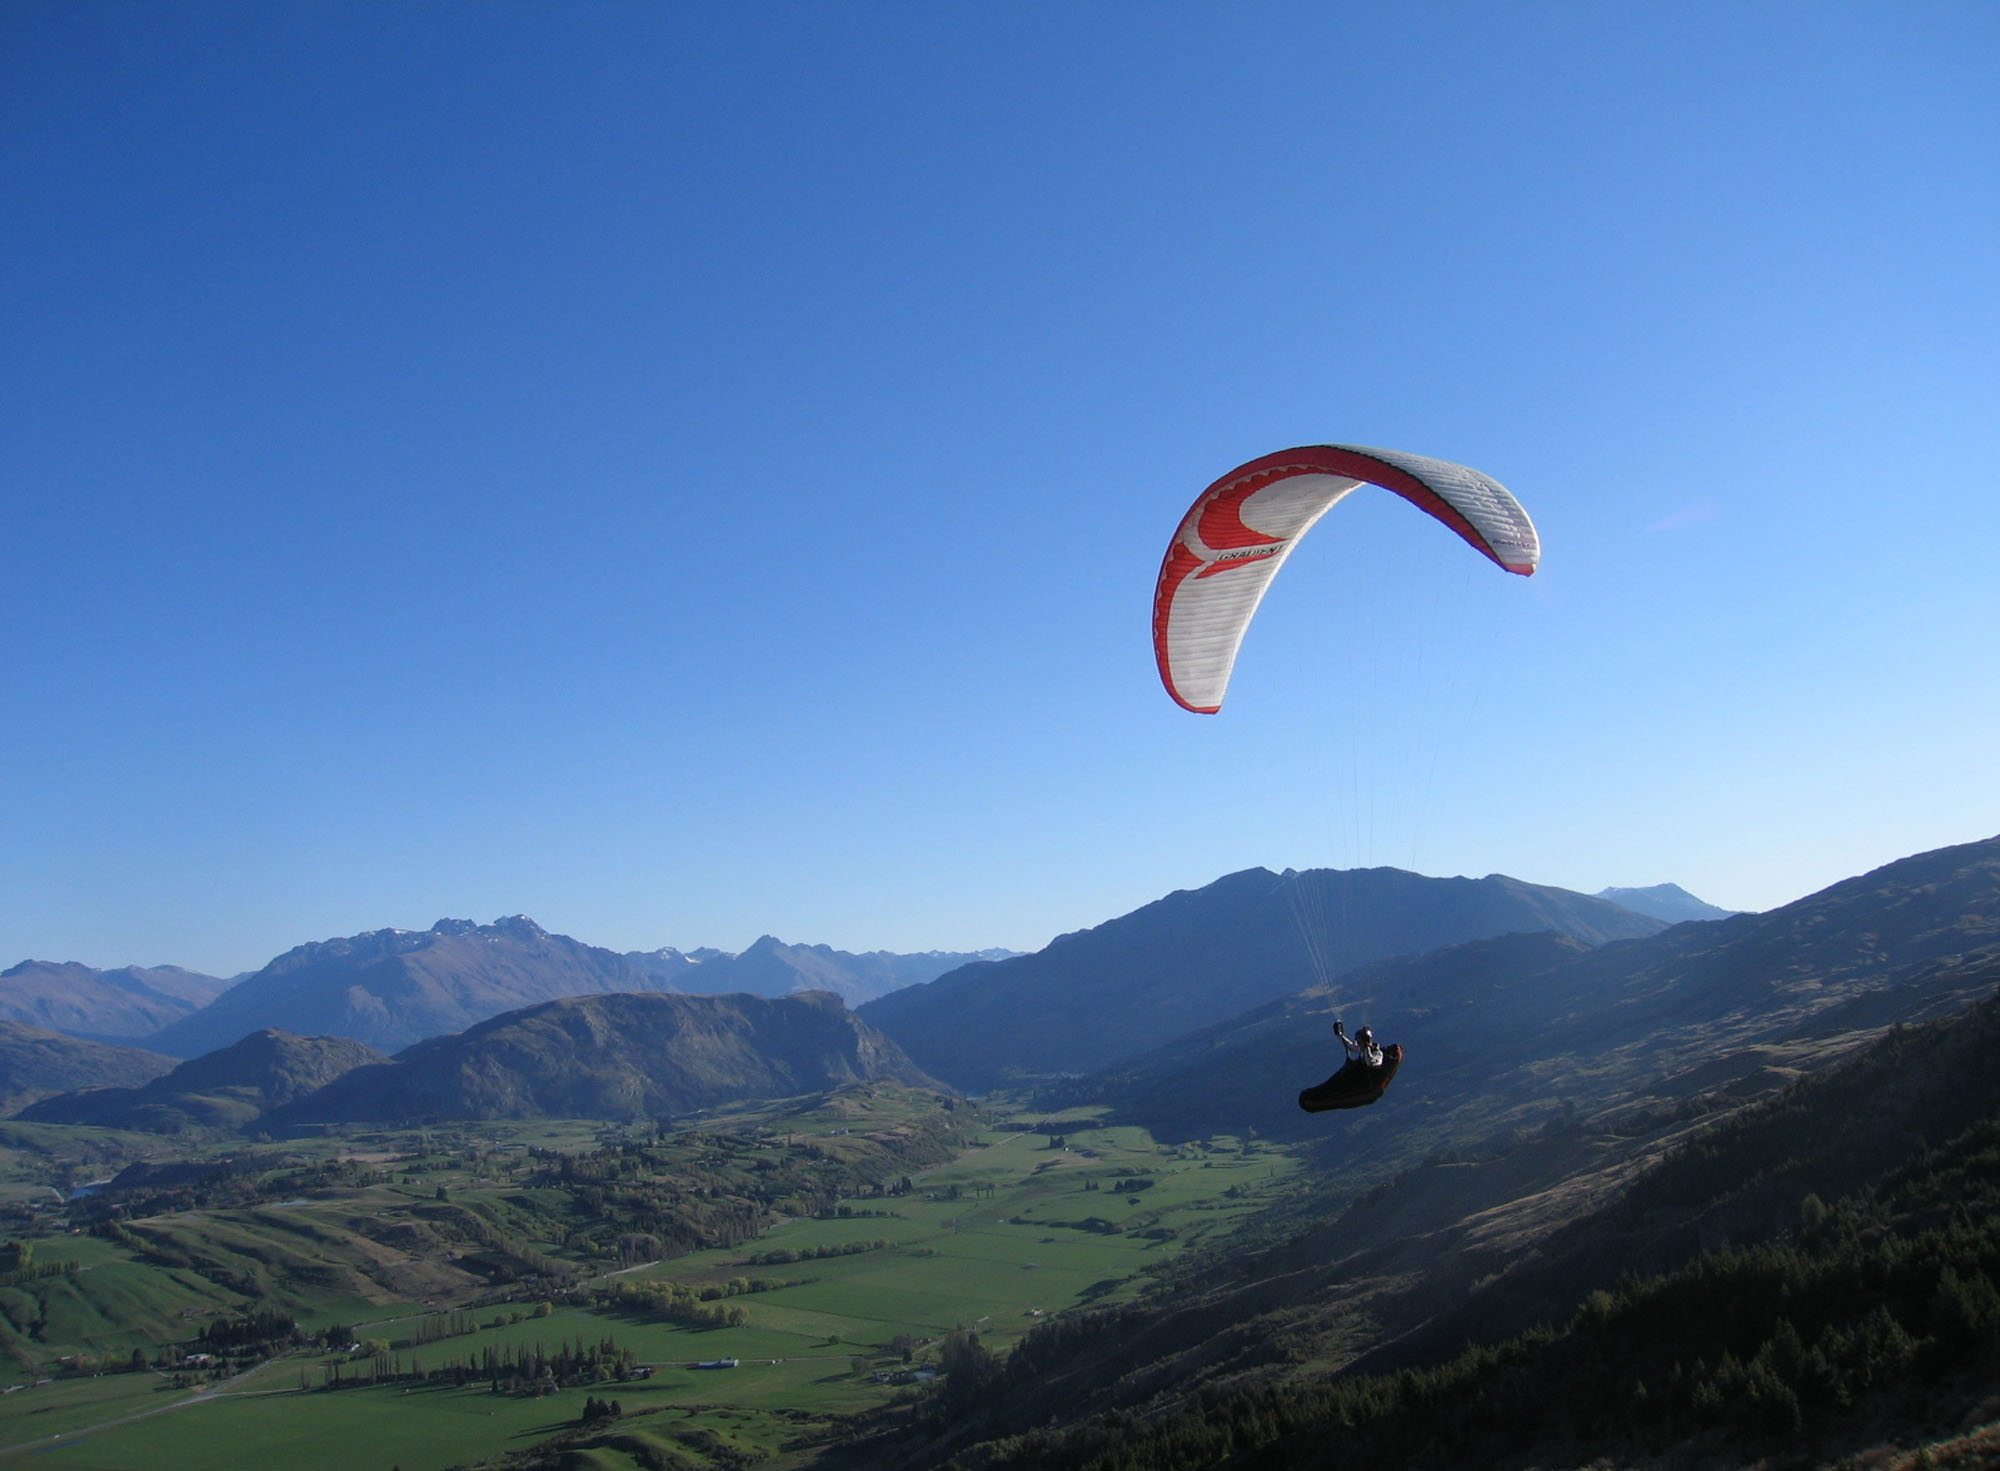 Cross Country XC Course - Infinity Paragliding 5